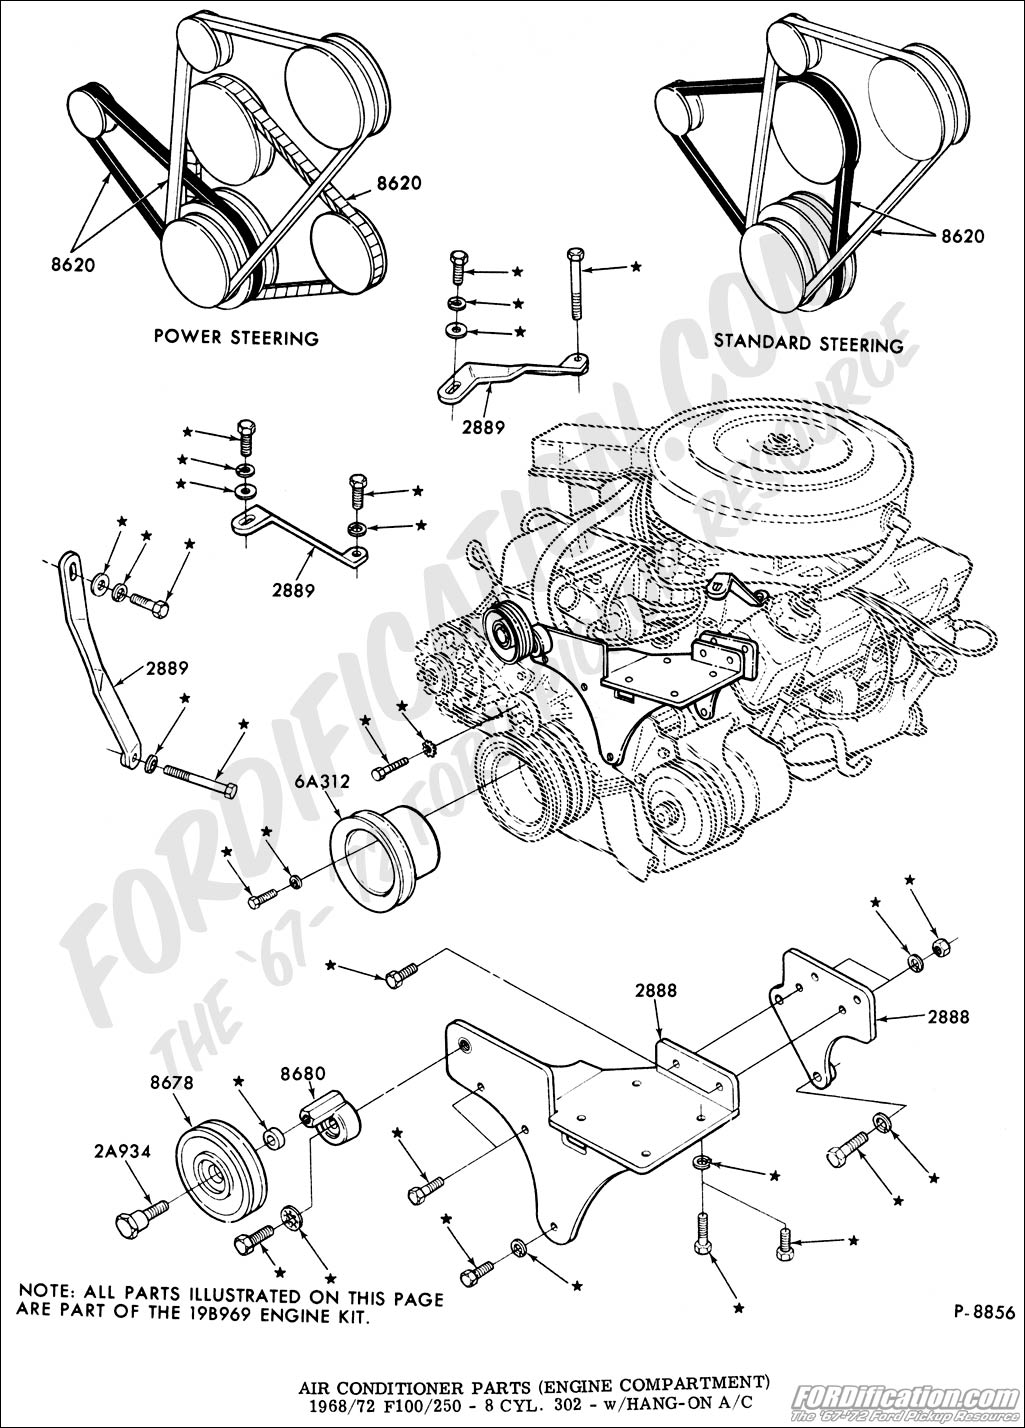 Vw 3204 Parts Diagrams On 1969 Corvette Air Conditioning Wiring Diagram Wiring Diagram